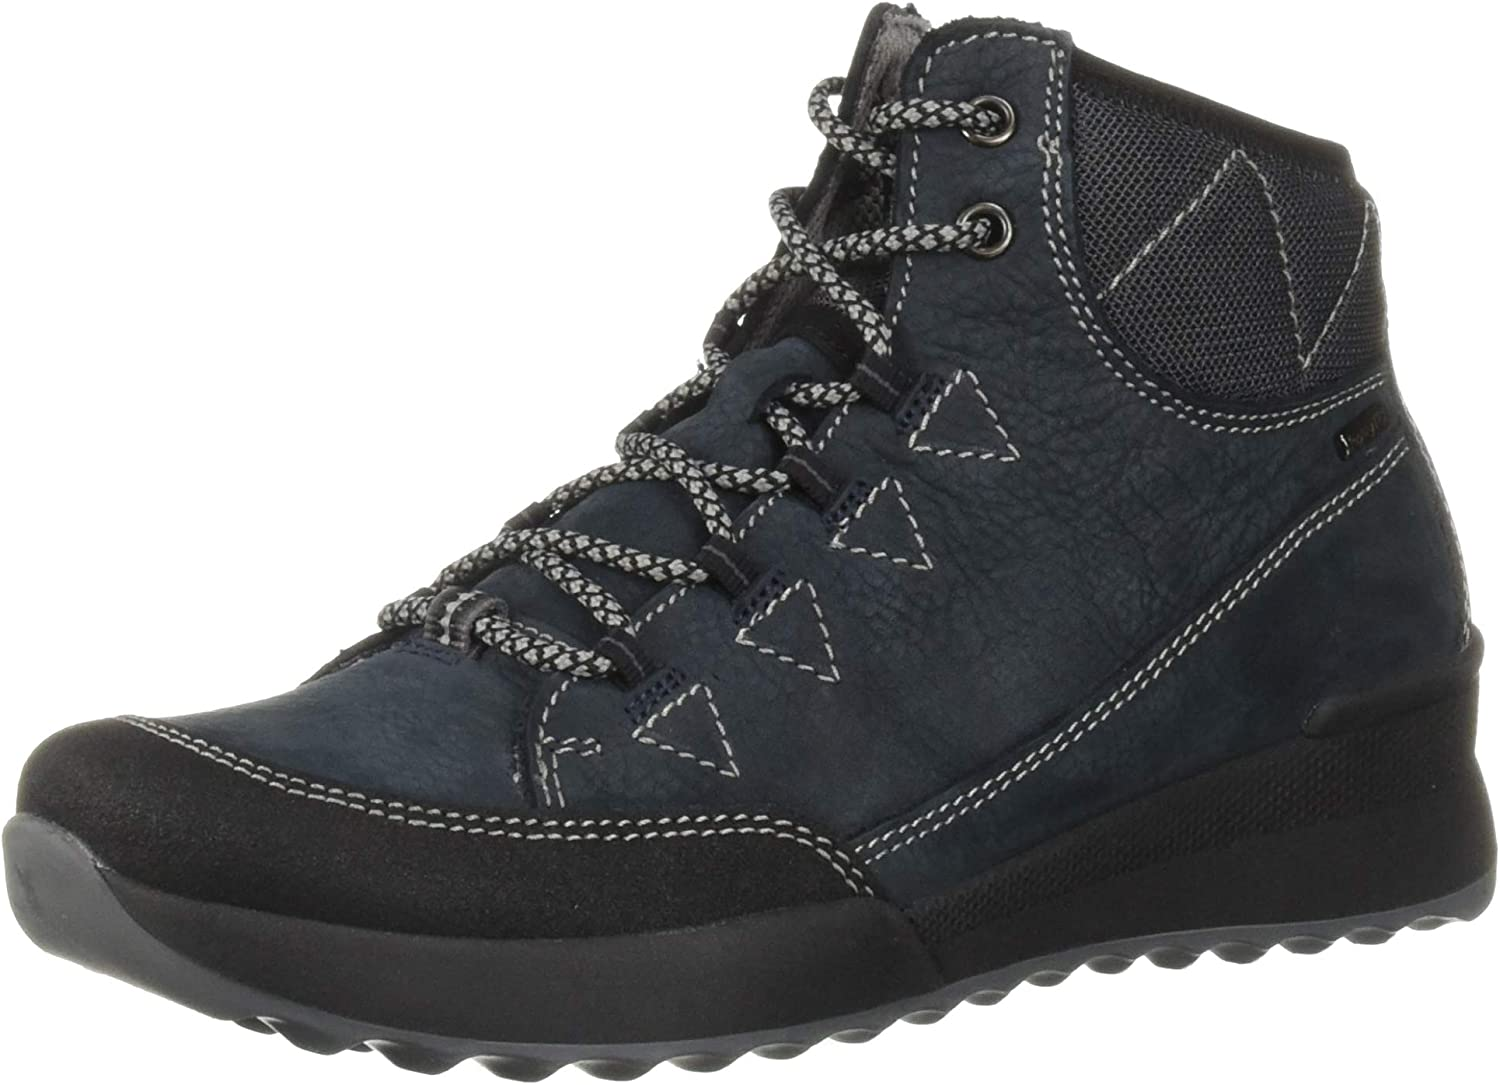 Romika Women s Victoria 14 Hiking Boot